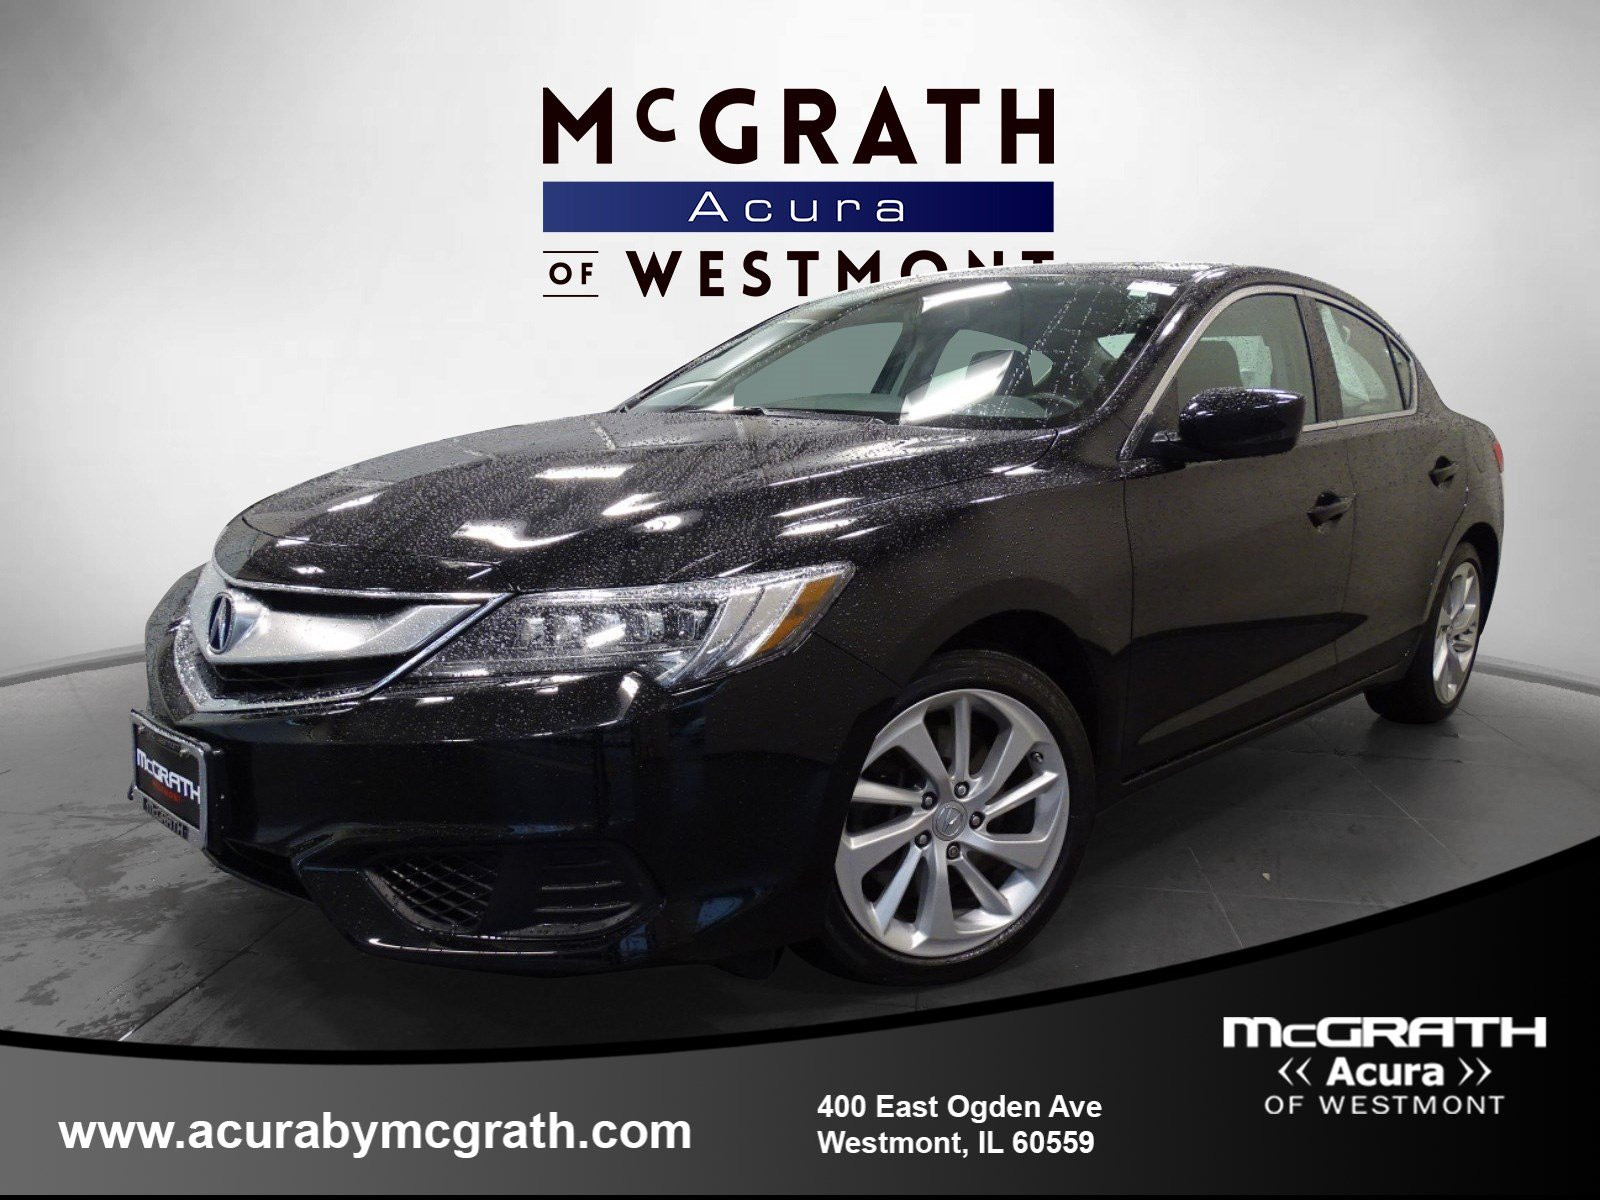 2019 Acura Clx Beautiful Certified Pre Owned 2016 Acura Ilx with Premium Package 4dr Car In